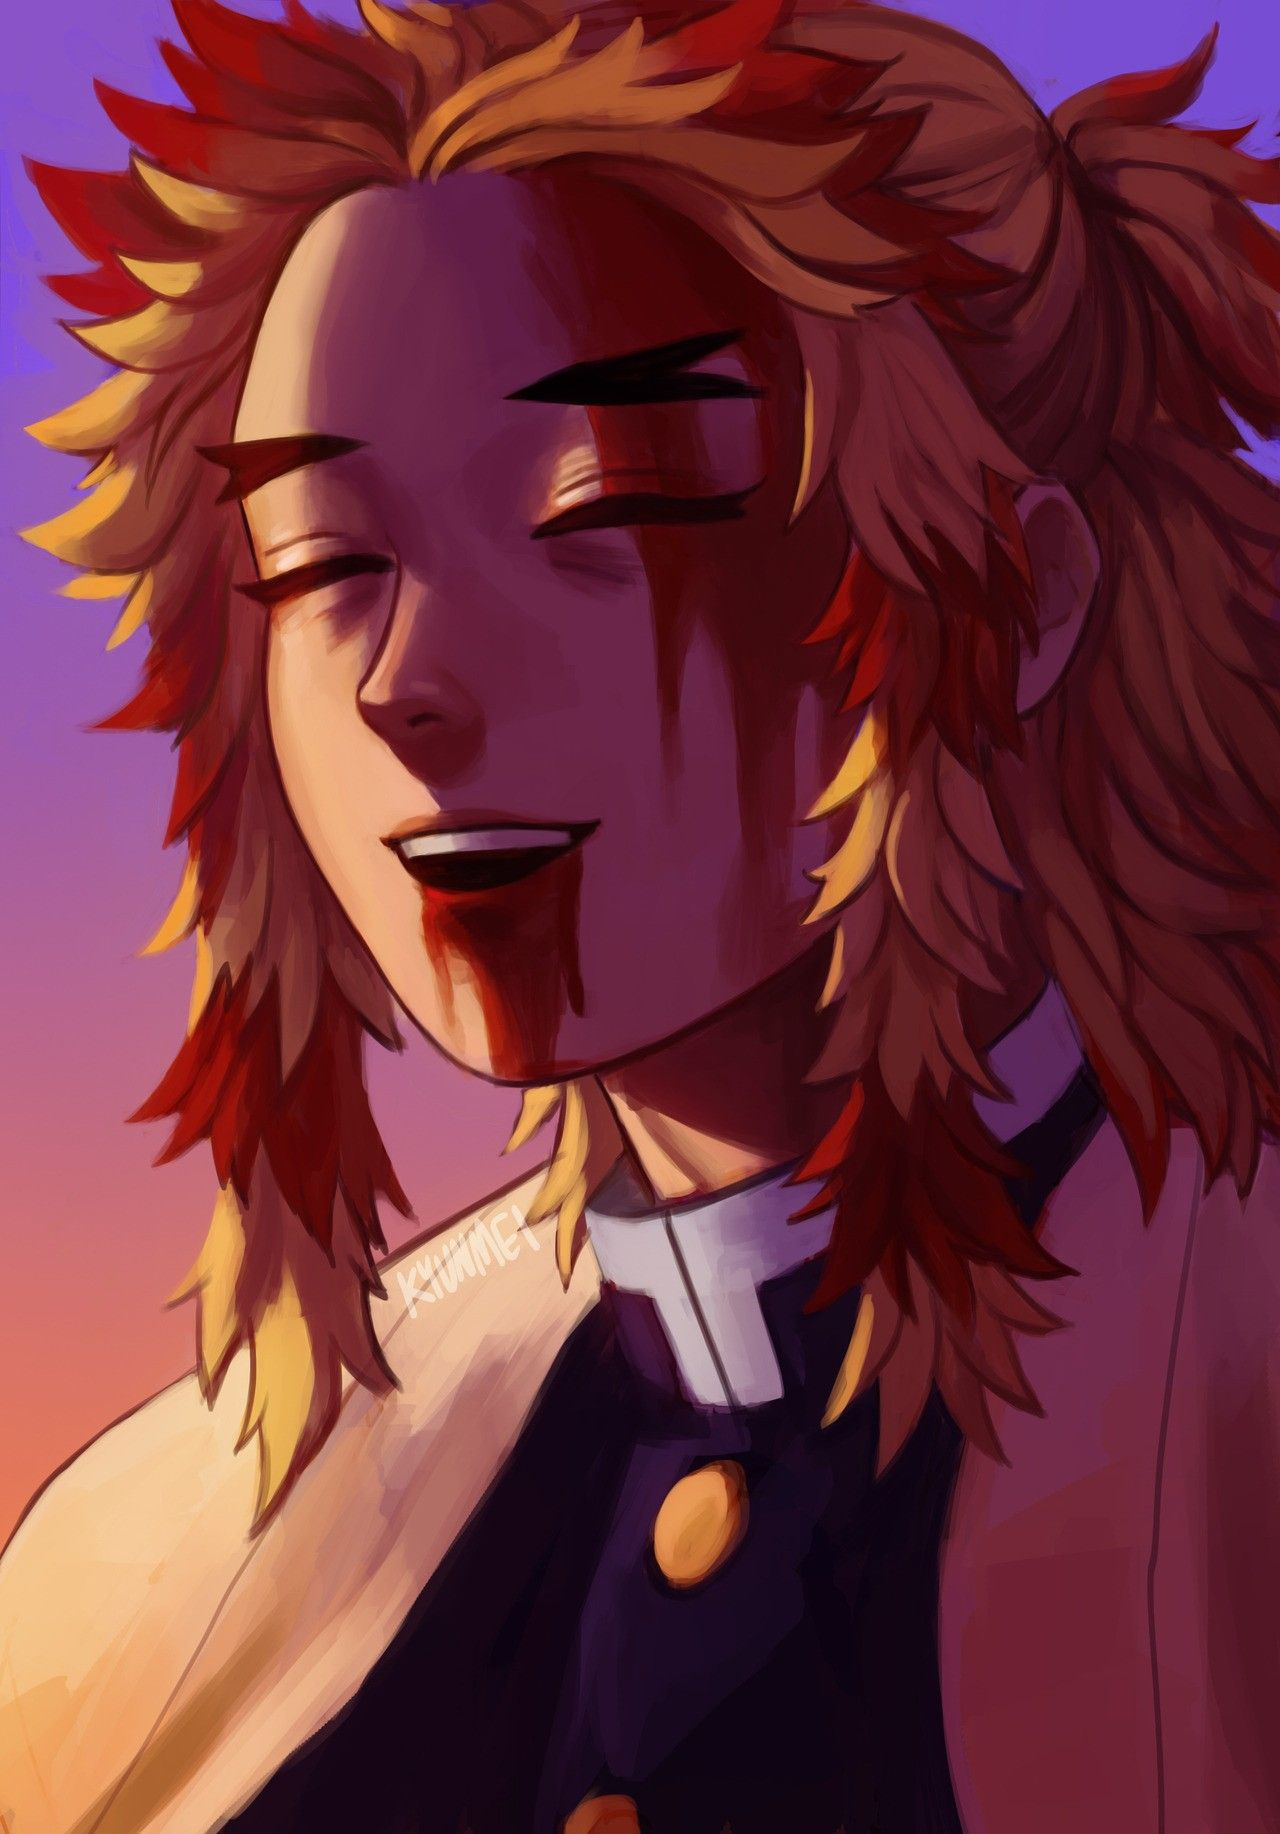 Rengoku is easily one of the most lovable hashira in the series. Pin on Demon Slayer